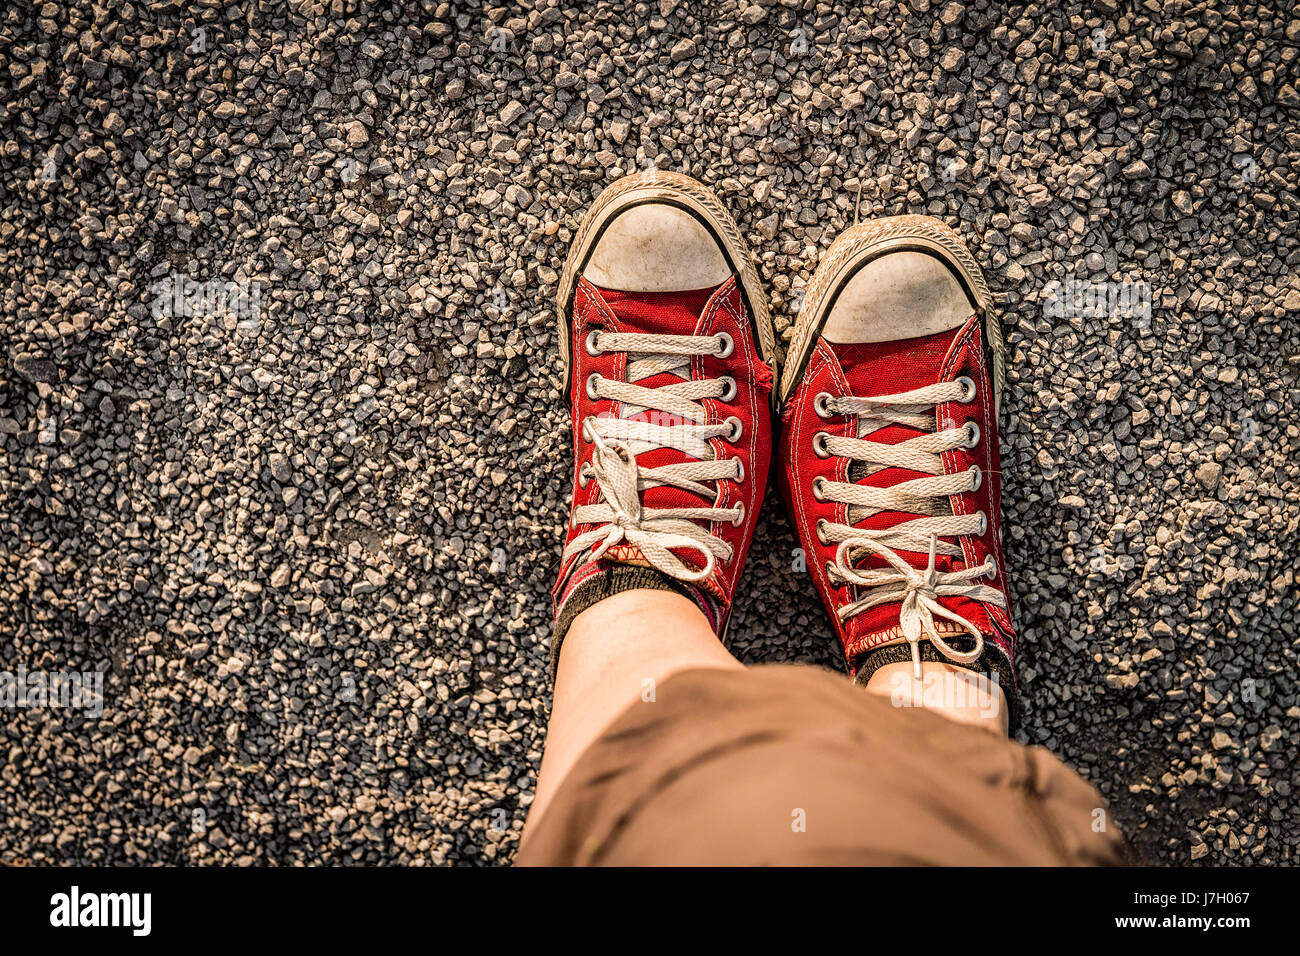 Feet in the red canvas sneakers on the gravel path - Stock Image